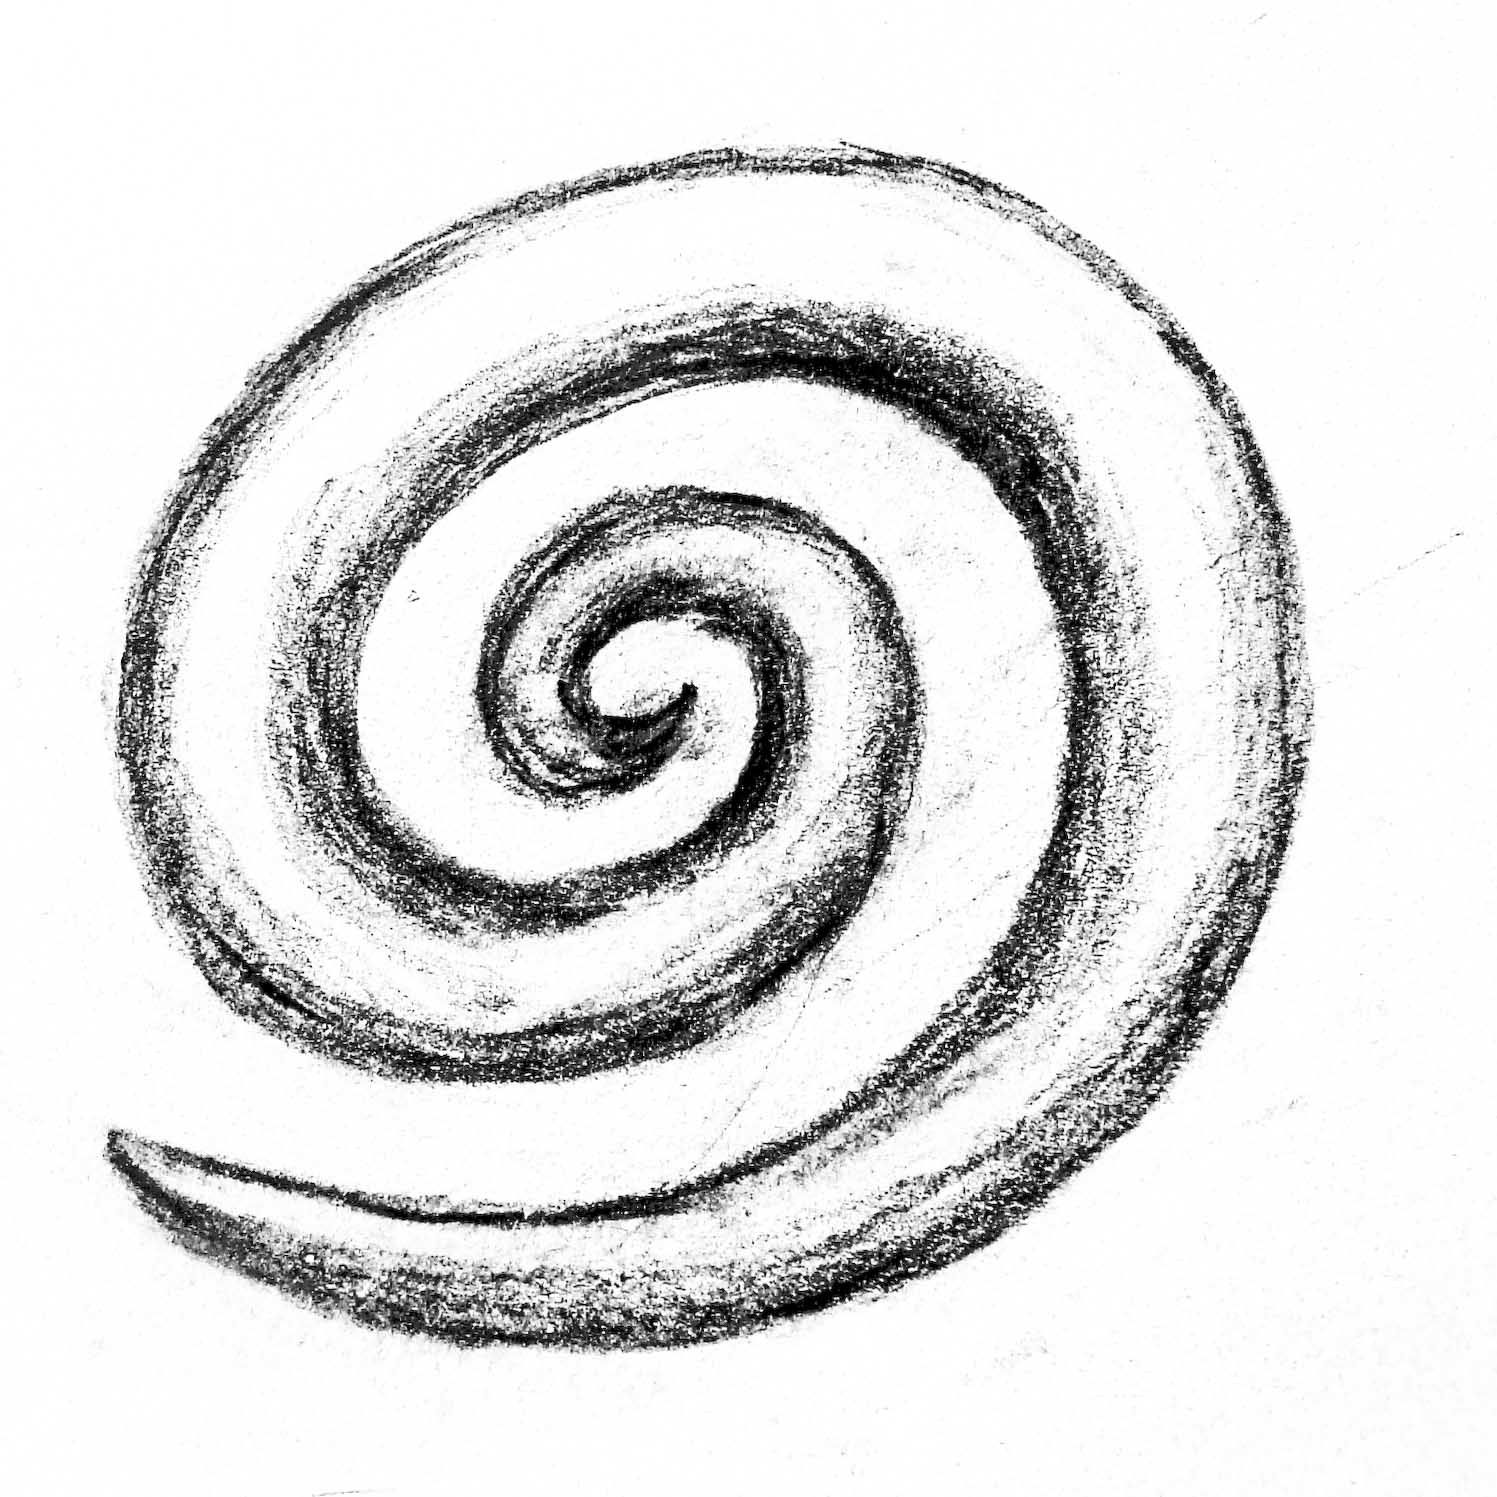 More extensive explanation of the Maori koru meaning as ...